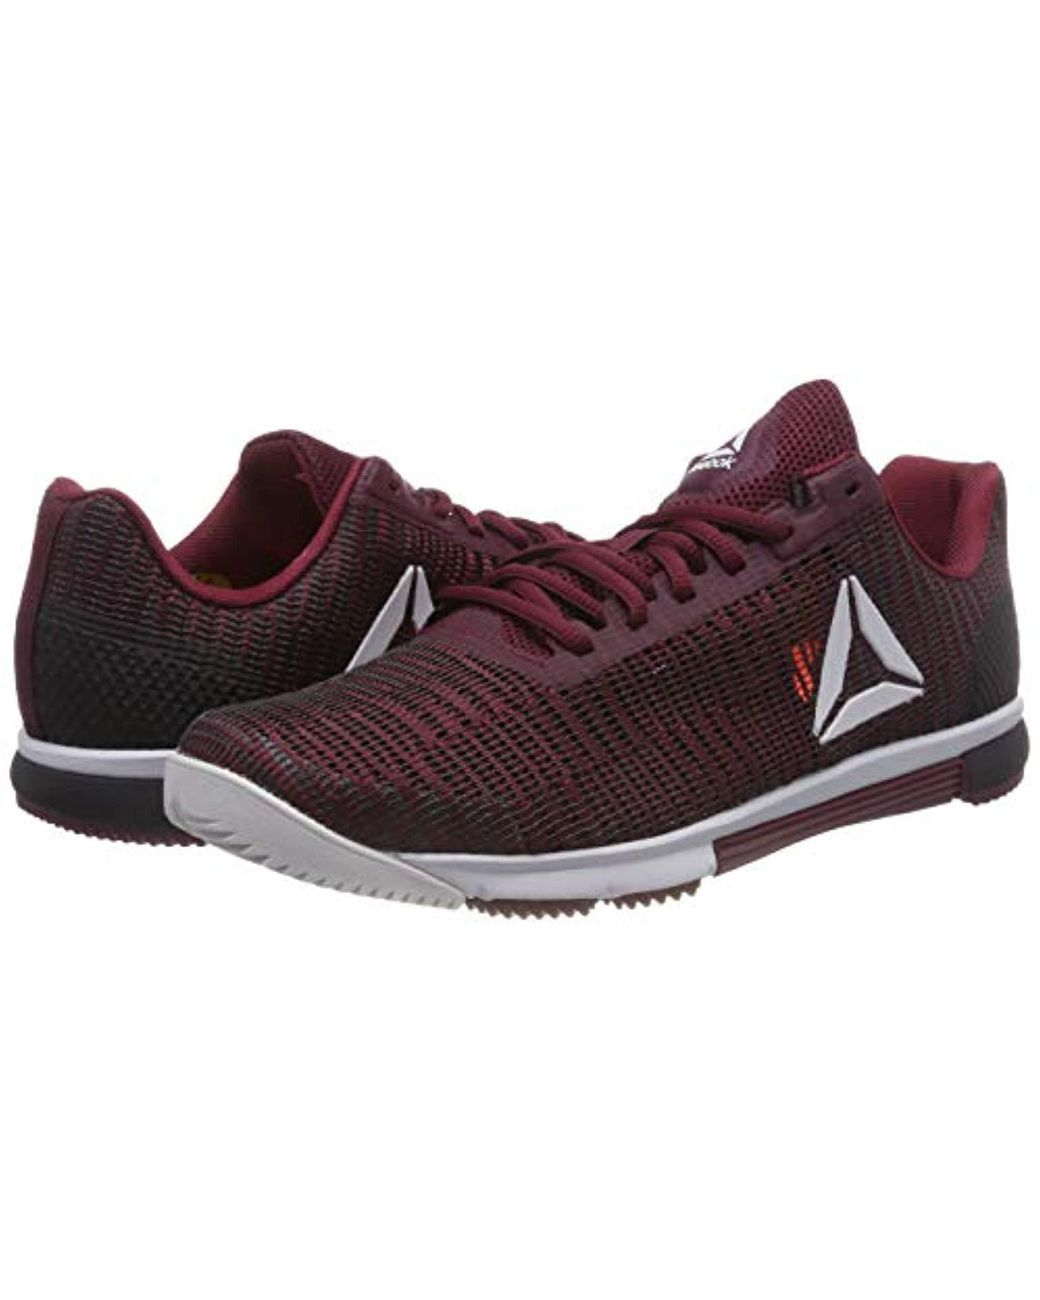 5bcc8fd2a381d Reebok Speed Tr Flexweave Cross Trainer in Red for Men - Save 44% - Lyst